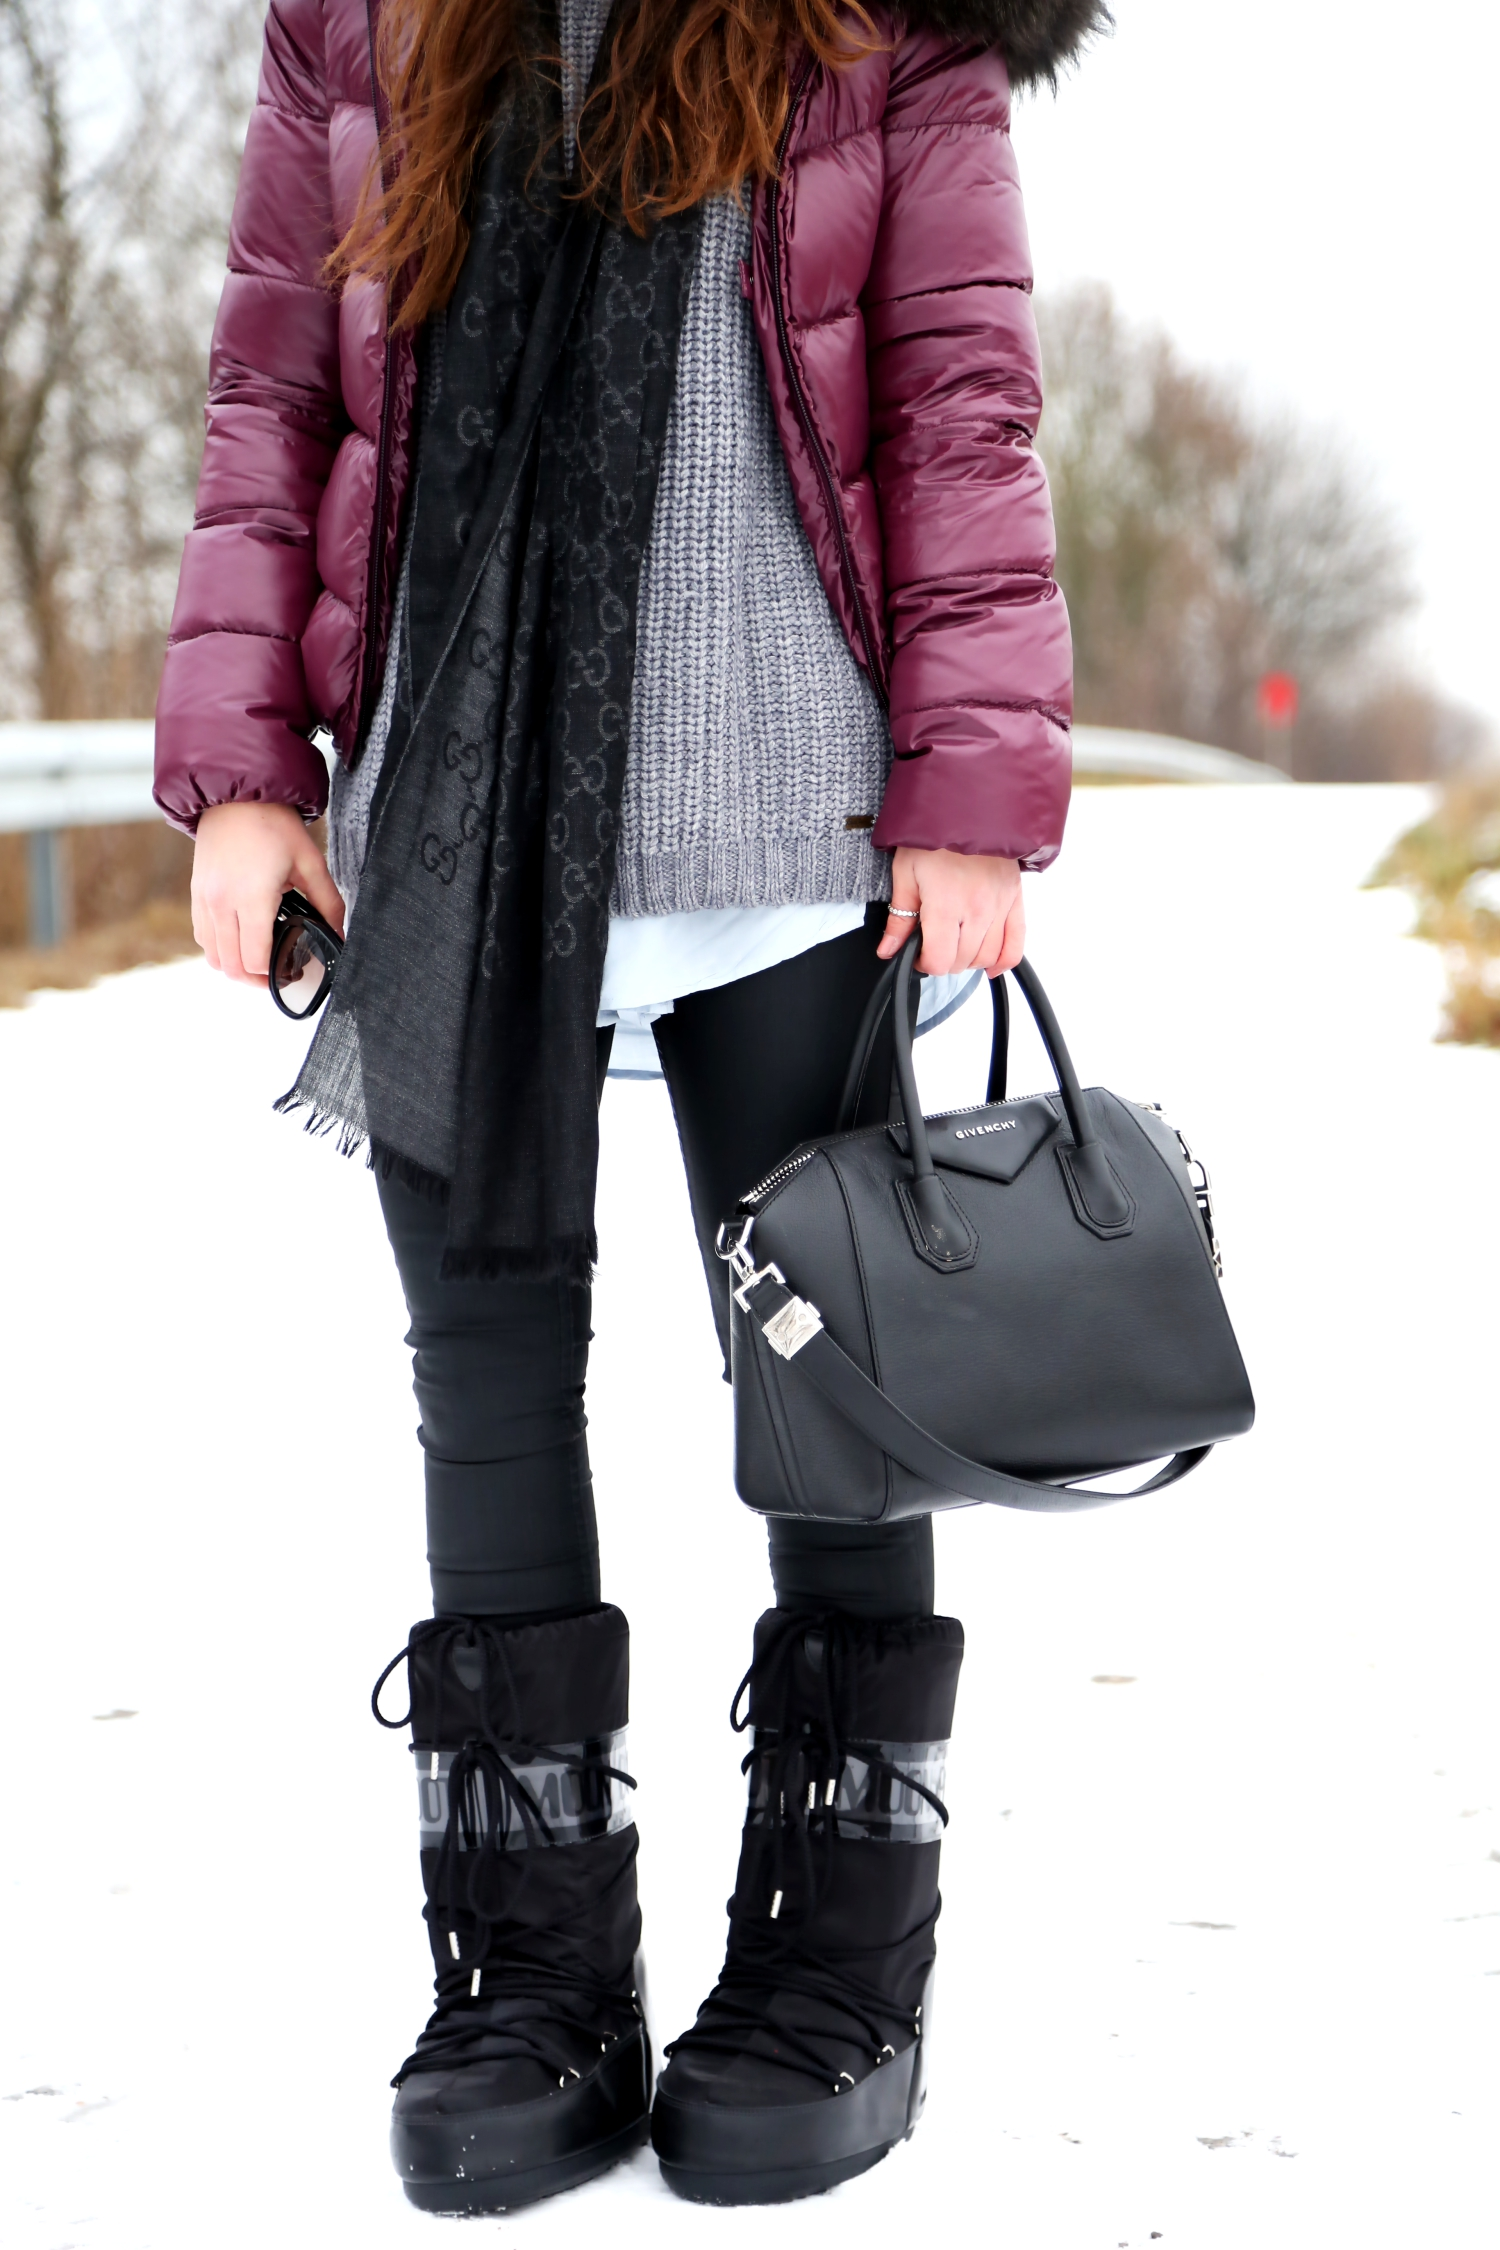 outfit-winter-look-snow-edited-moon-boots-givenchy-bag-duvetica